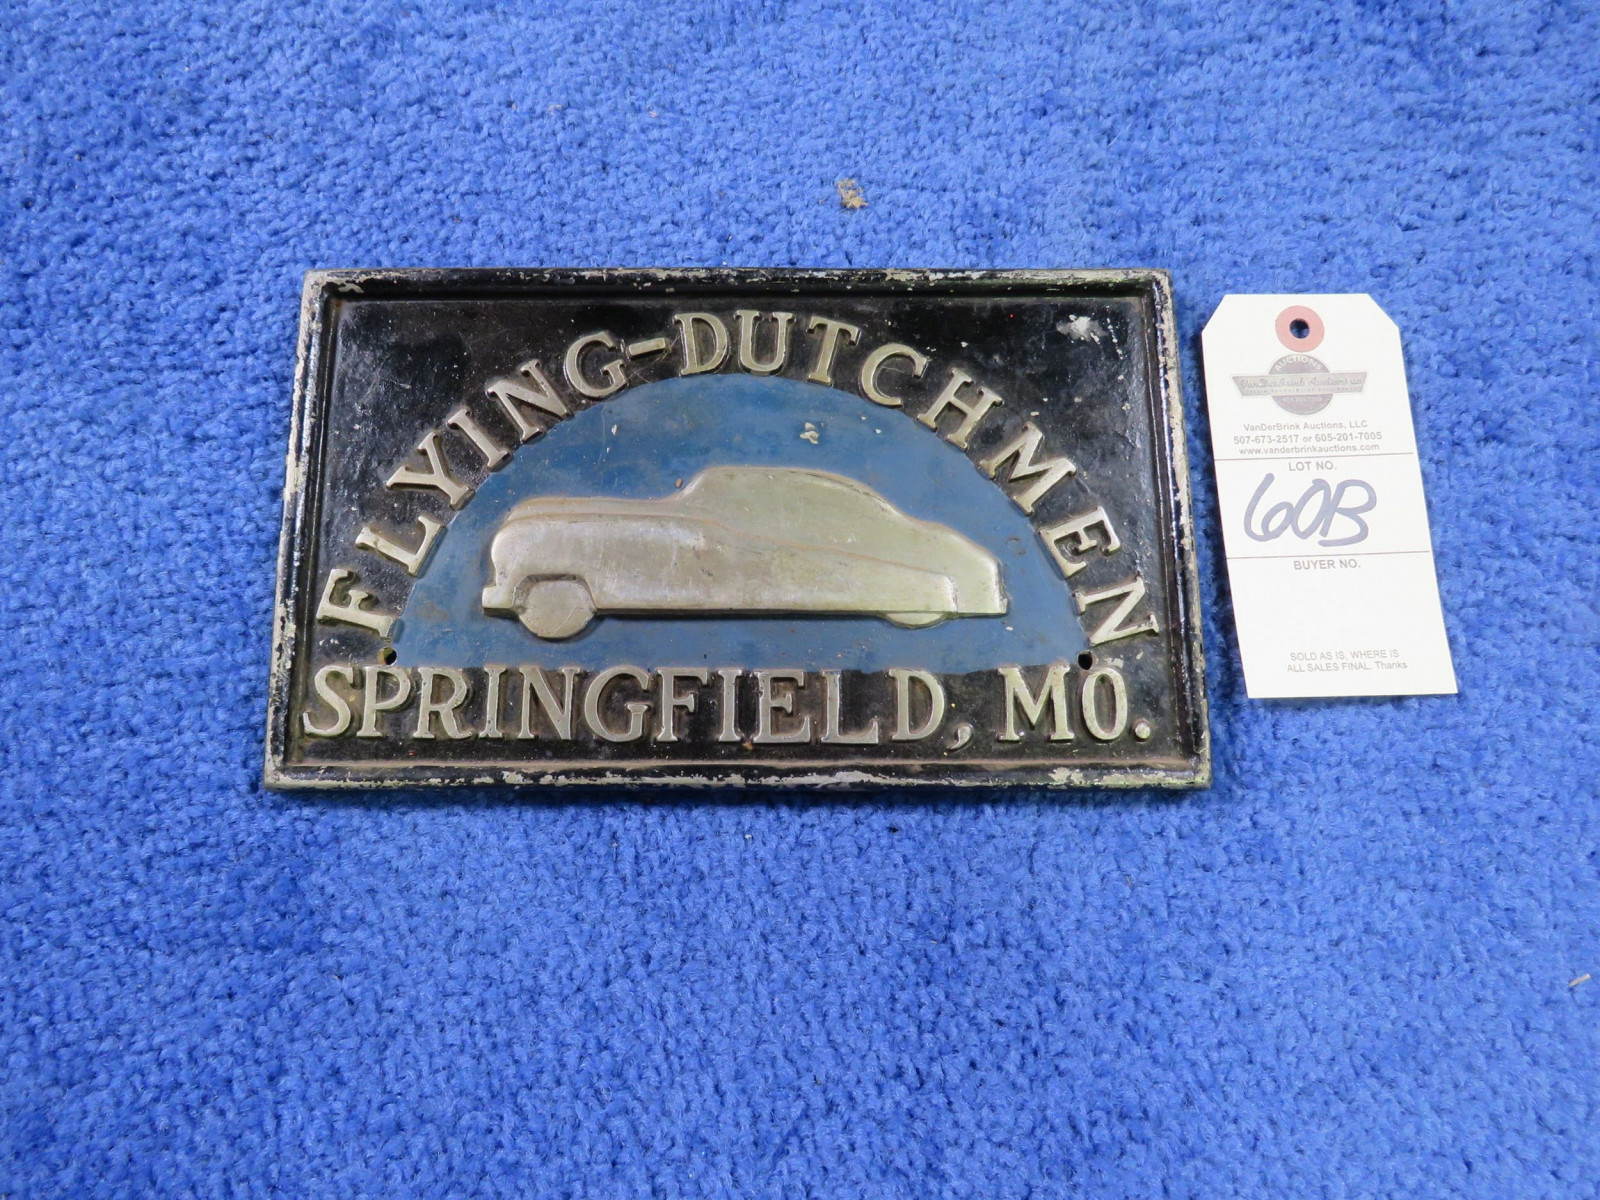 Flying Dutchman Vintage Vehicle Club Plate- Pot Metal - Image 1